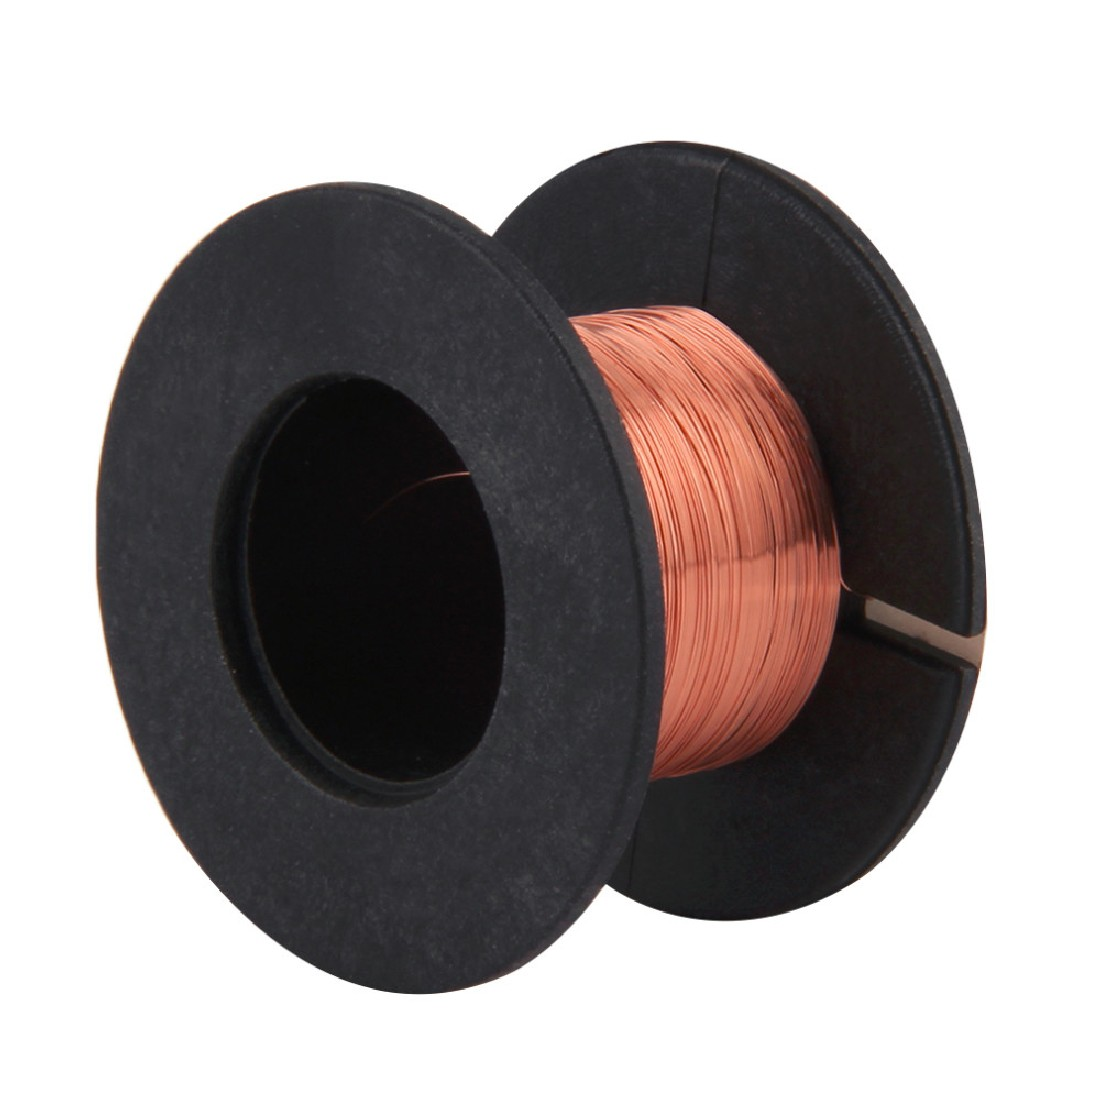 Weld Copper Soldering Solder 0.1MM PPA Enamelled Reel Wire For Welding Repair Maintenance High Quality